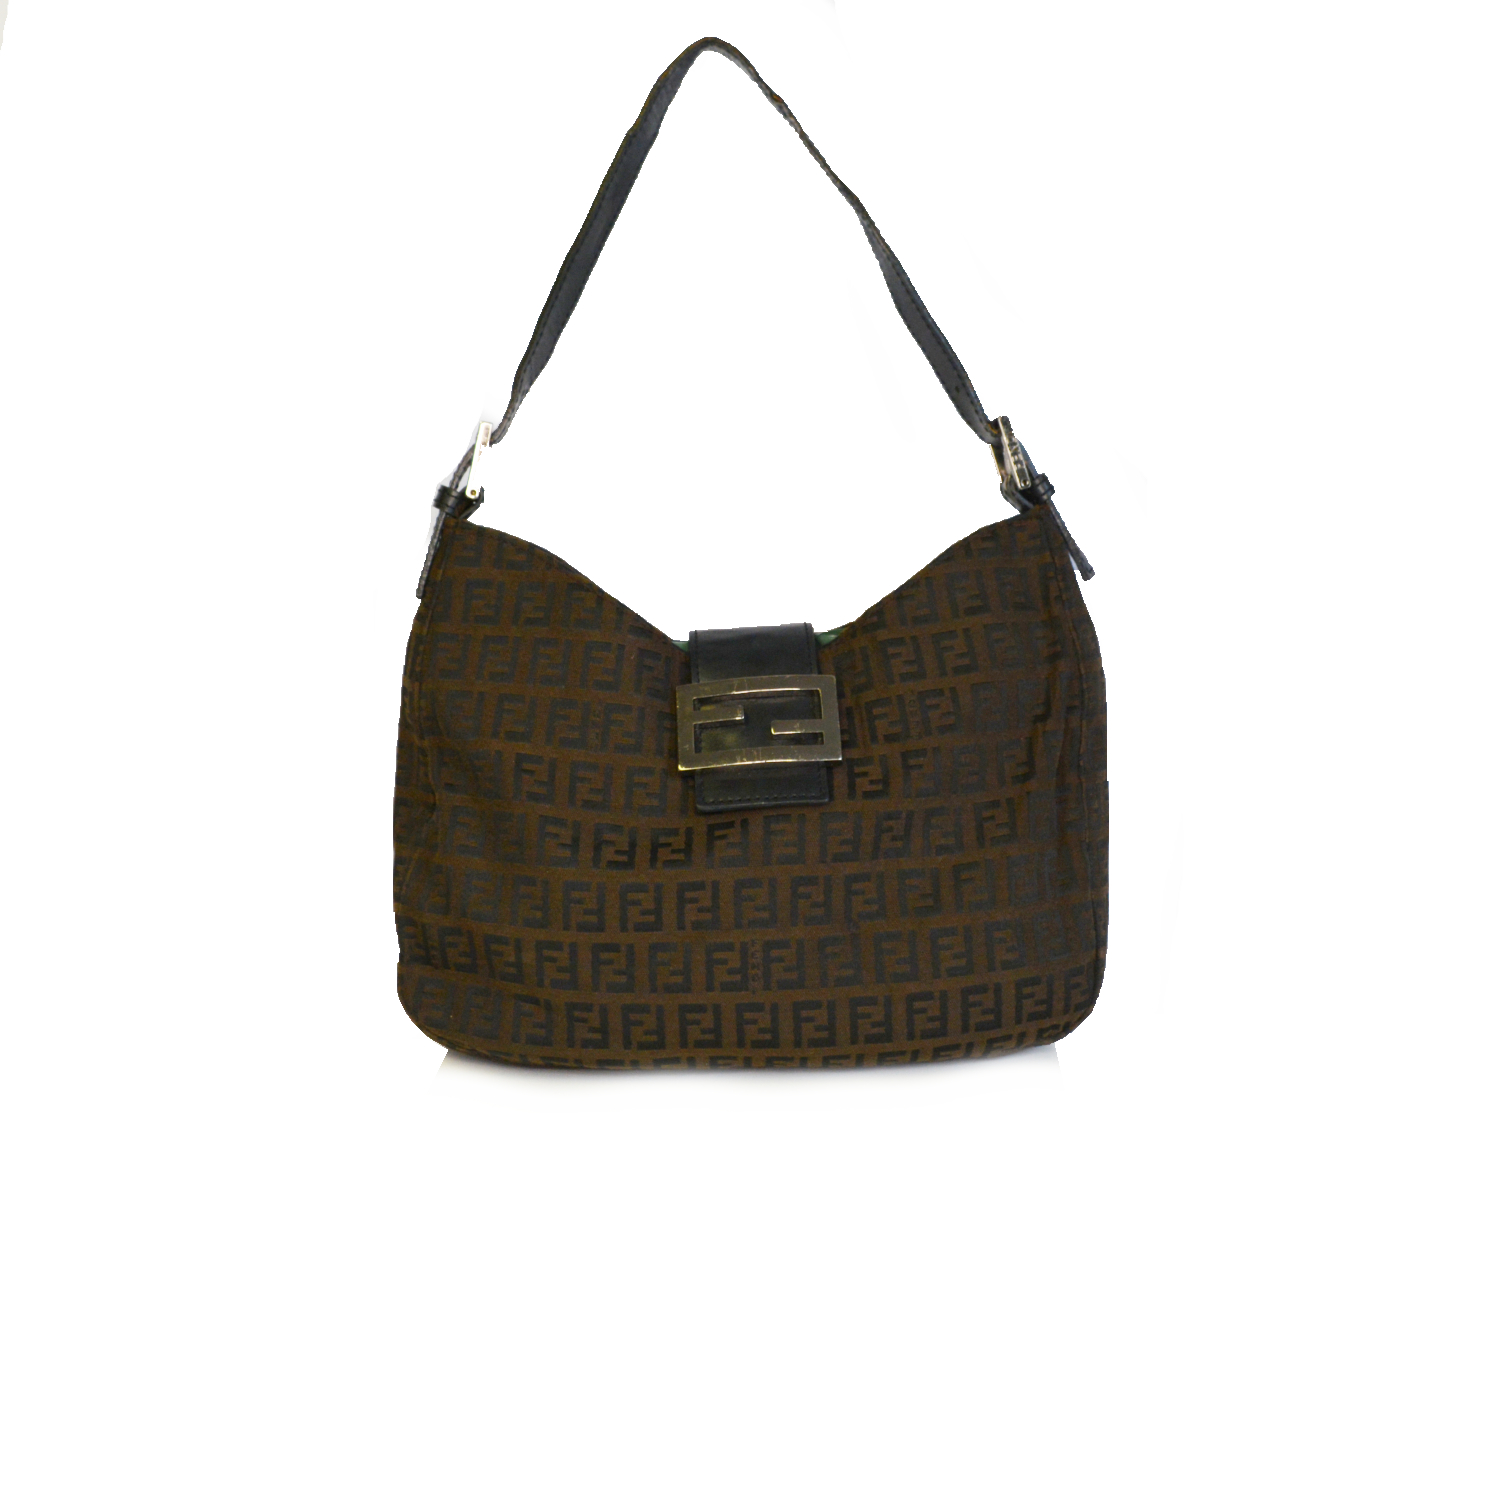 Vintage Fendi Zucchino Monogram Shoulder Bag in Dark Brown | NITRYL